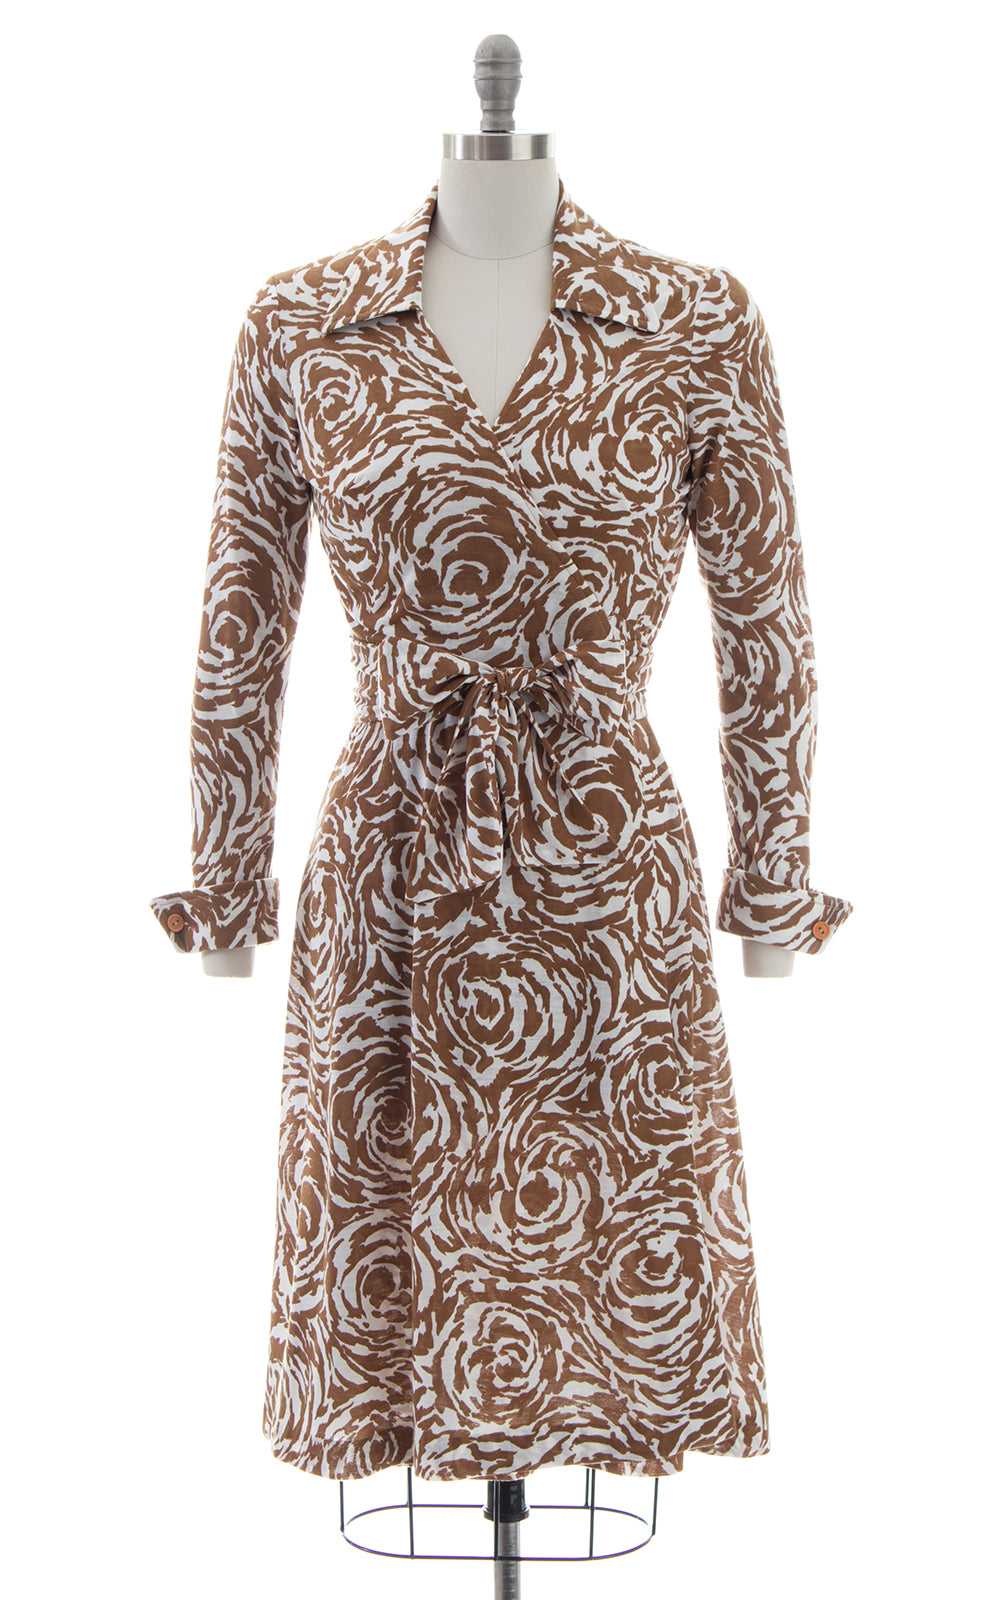 1970s Printed Jersey Knit Wrap Dress